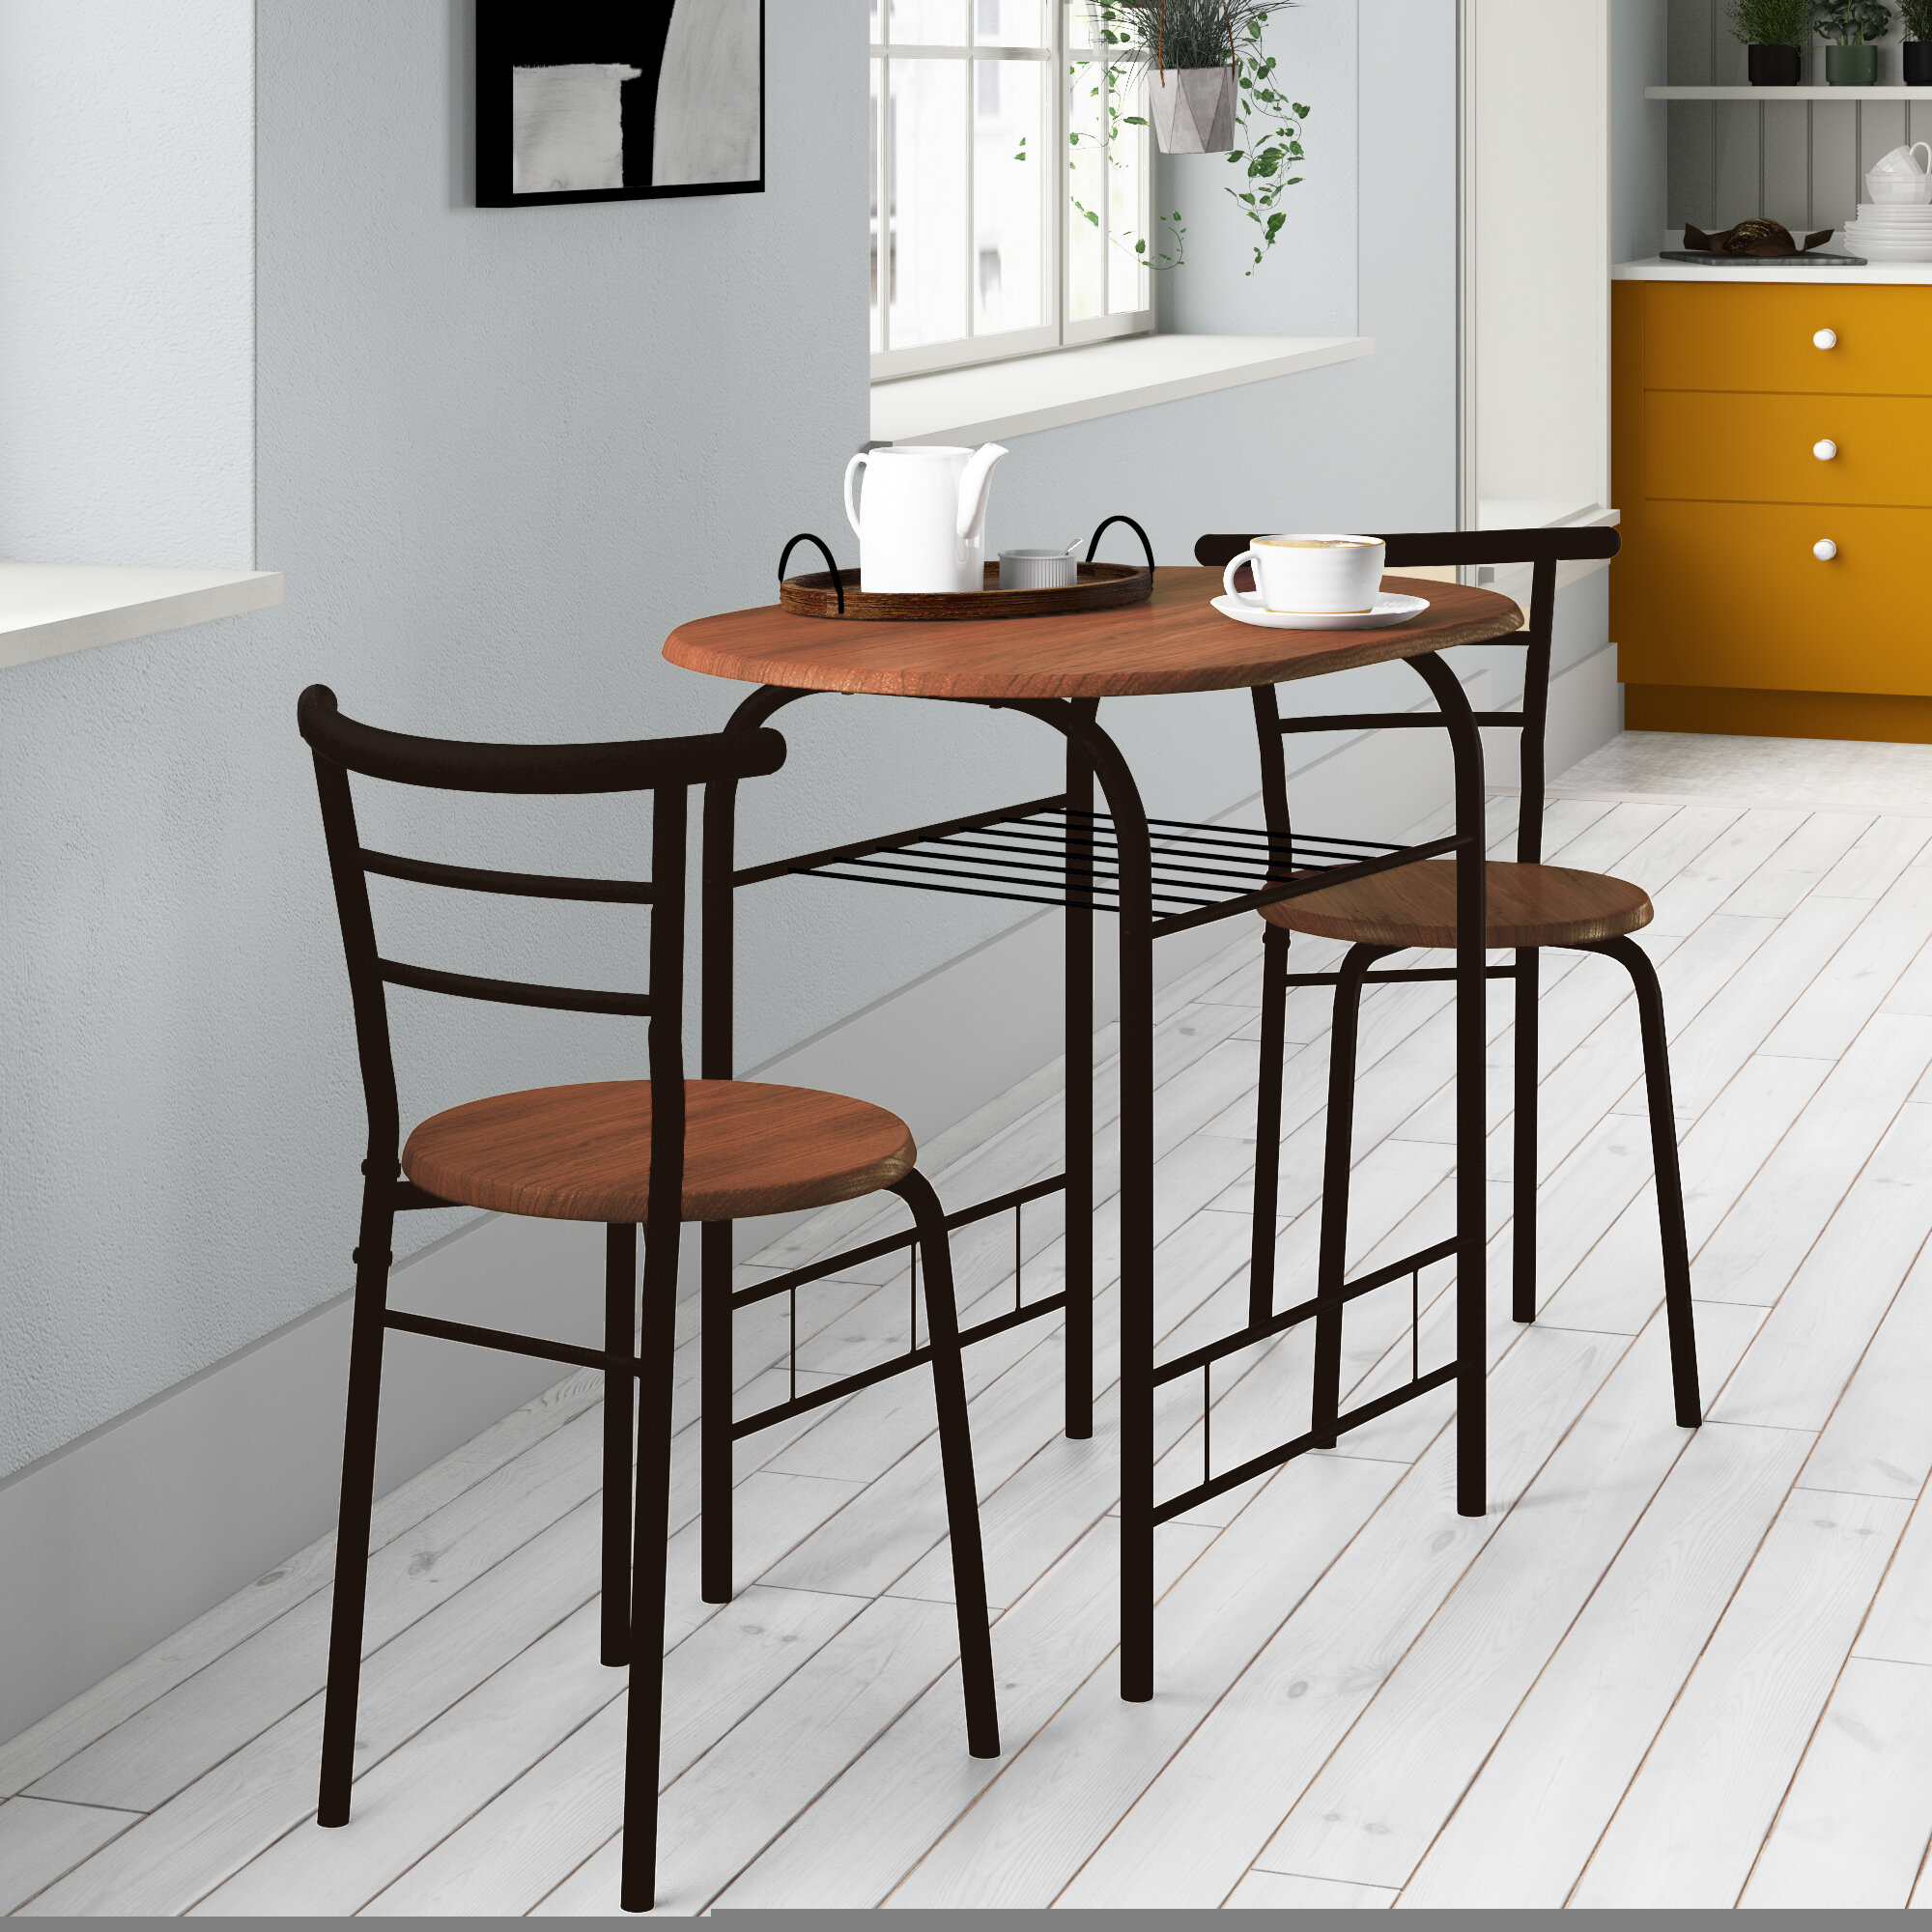 Zipcode Design Volmer 3 Piece Compact Dining Set Intended For Most Up To Date Isolde 3 Piece Dining Sets (Image 20 of 20)